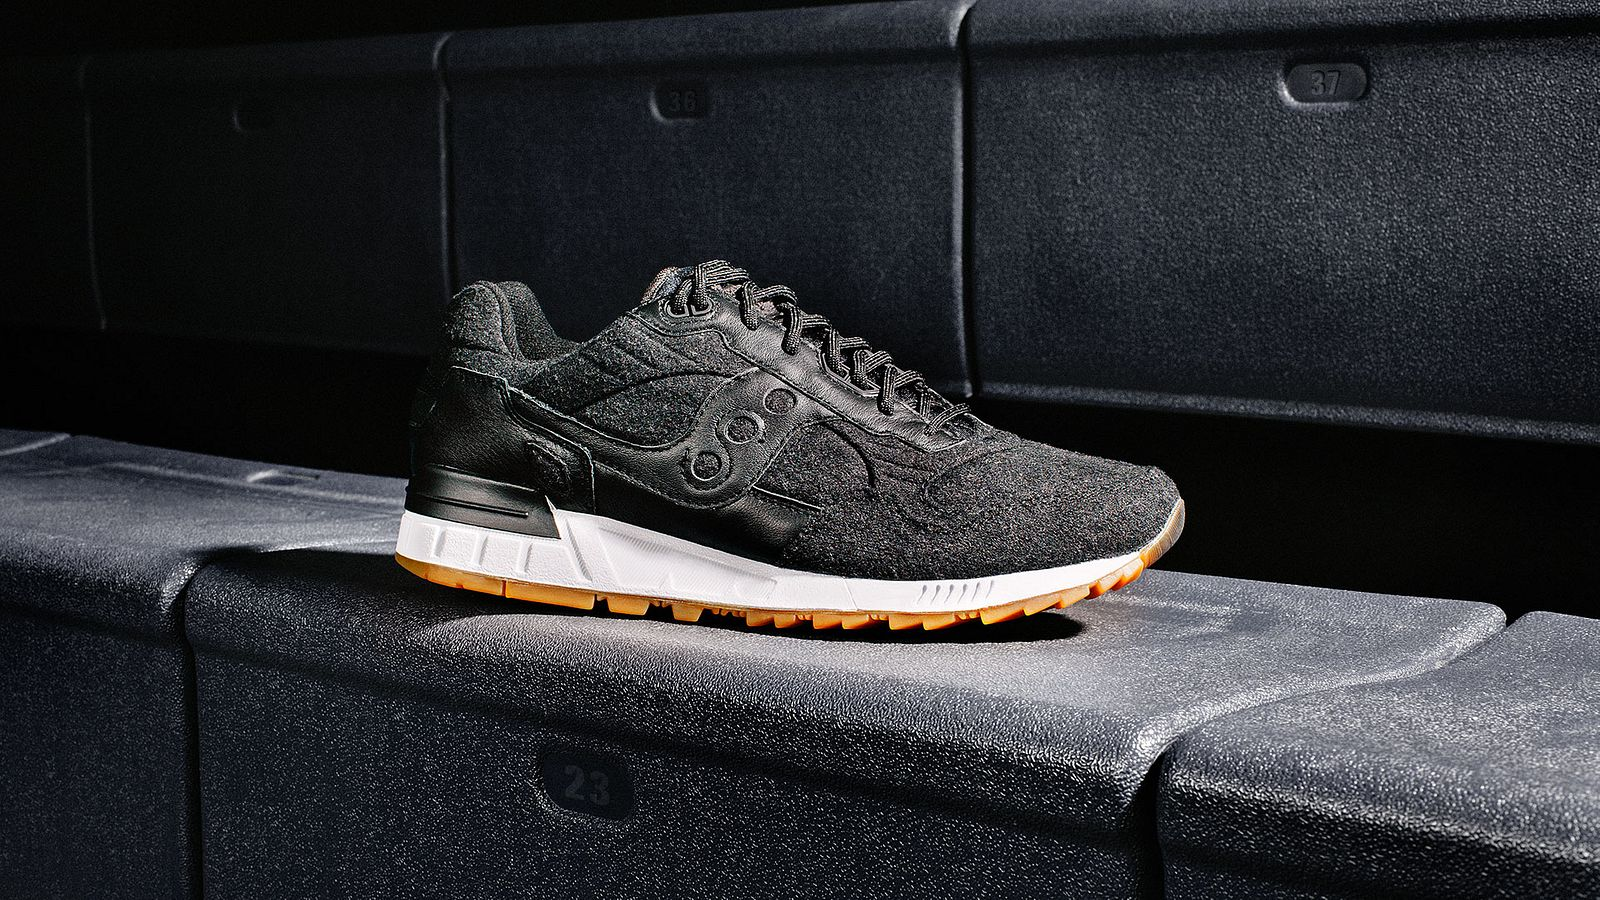 Letterman shoe for Saucony Originals, styled by Someoddpilot